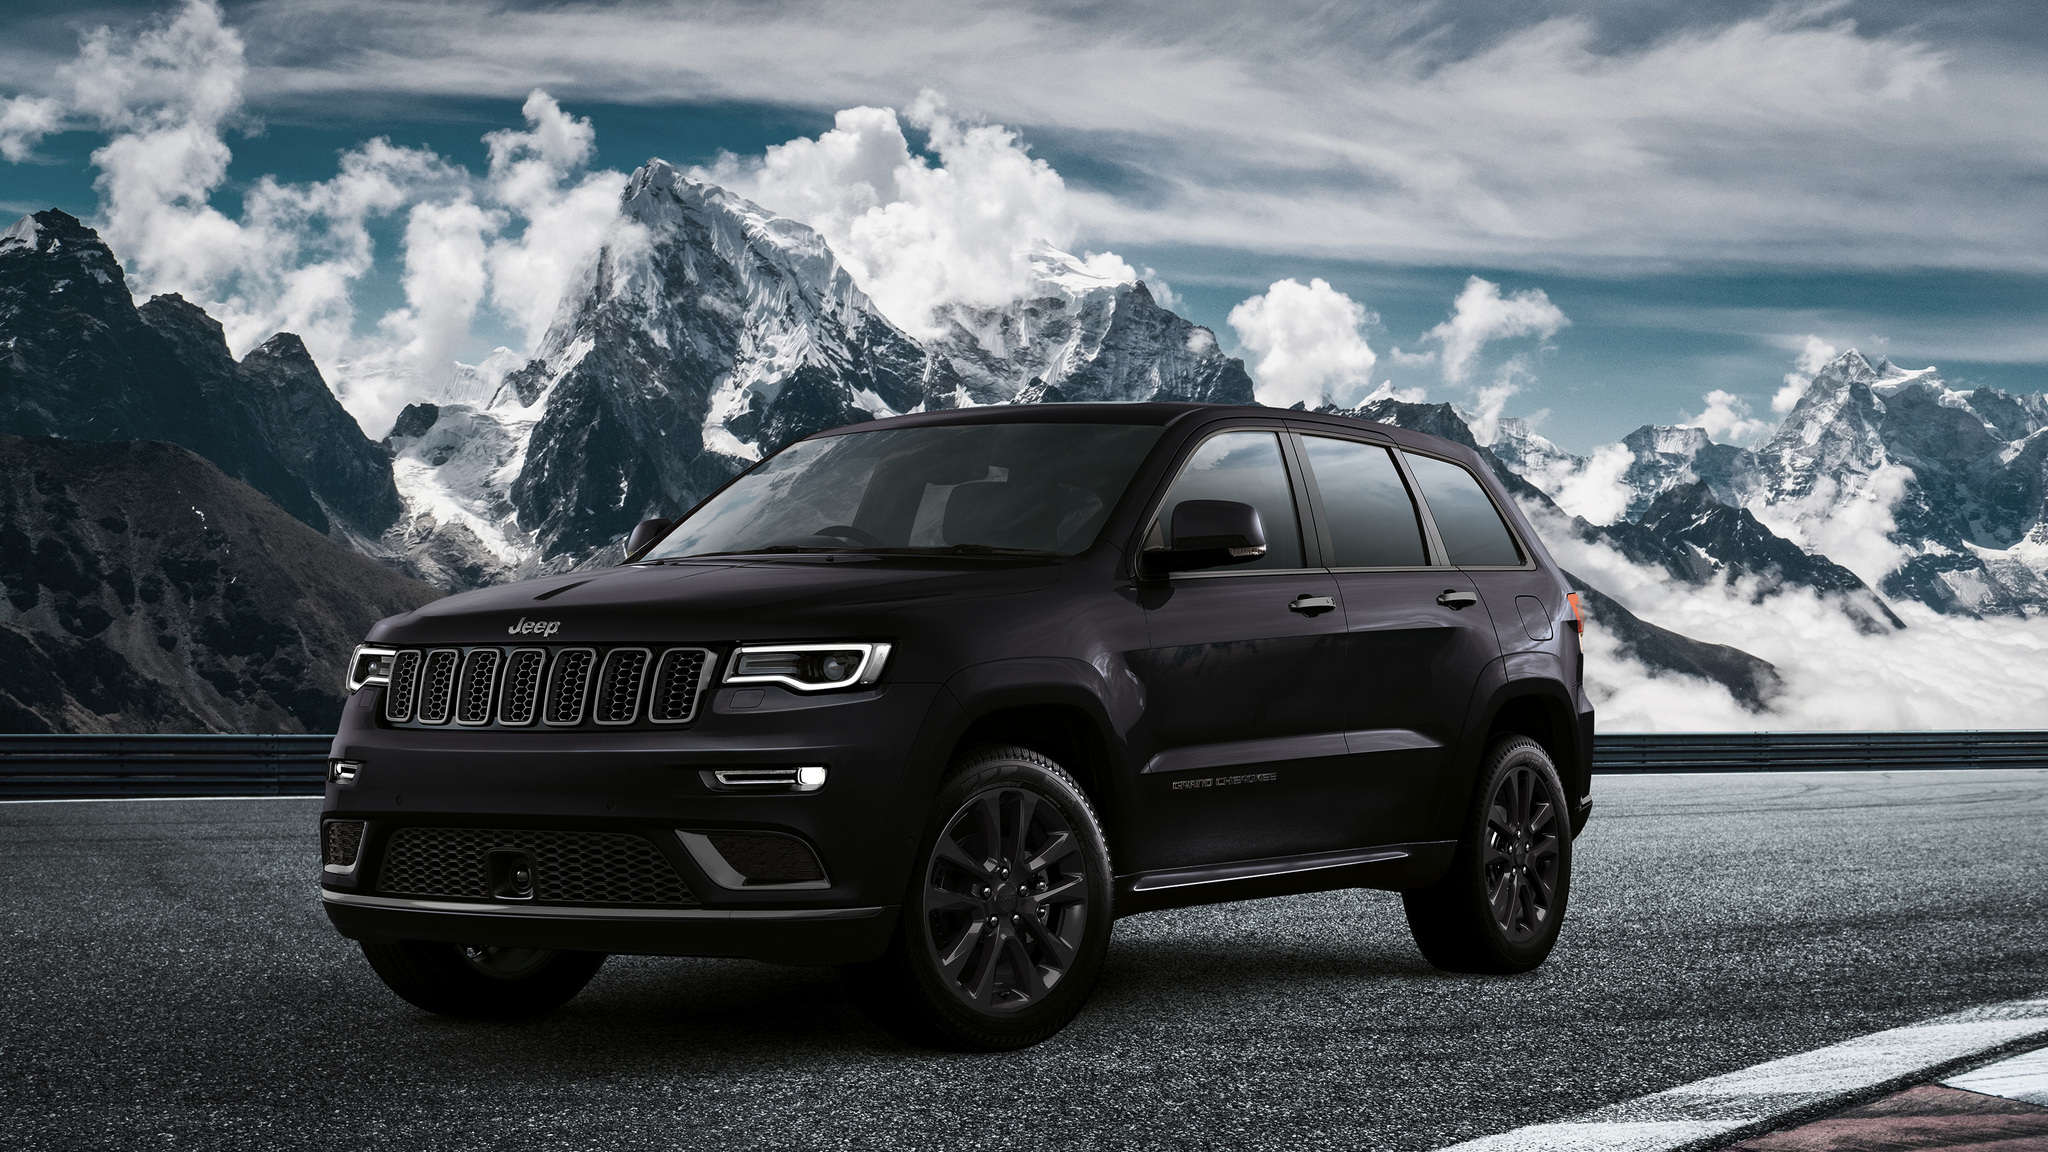 2048x1152 jeep grand cherokee s 2018 2048x1152 resolution hd 4k